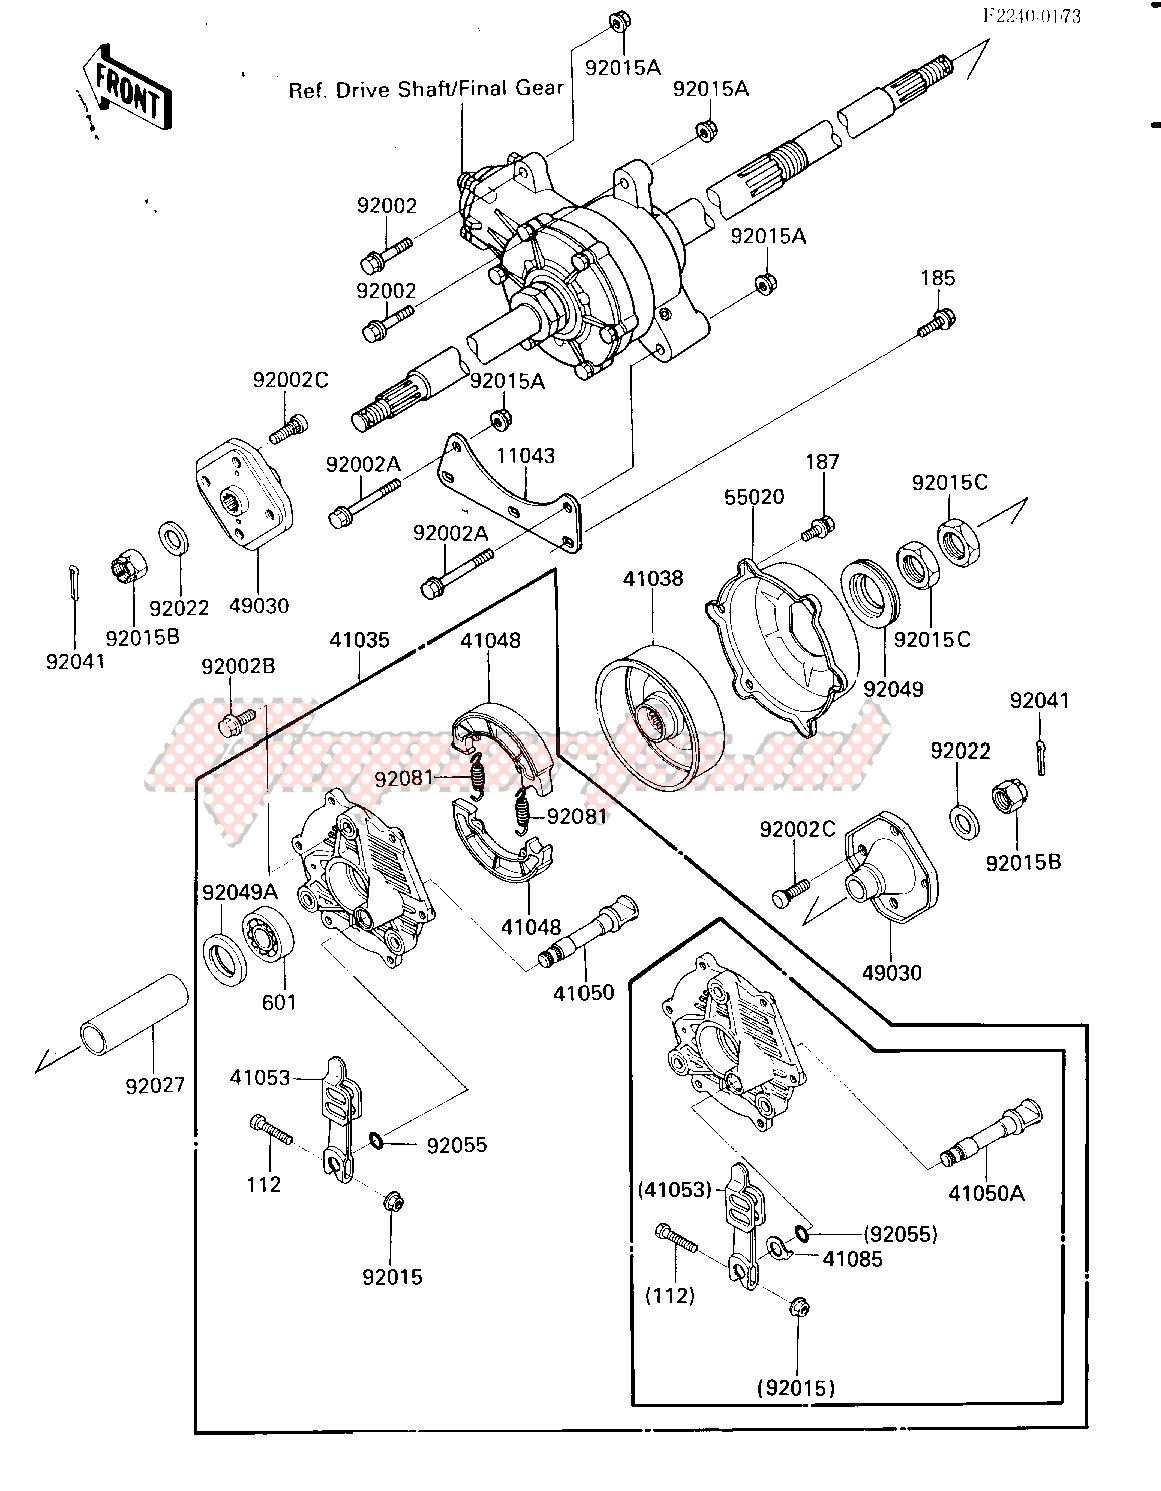 REAR HUB_BRAKE -- -F_NO.012886- - image